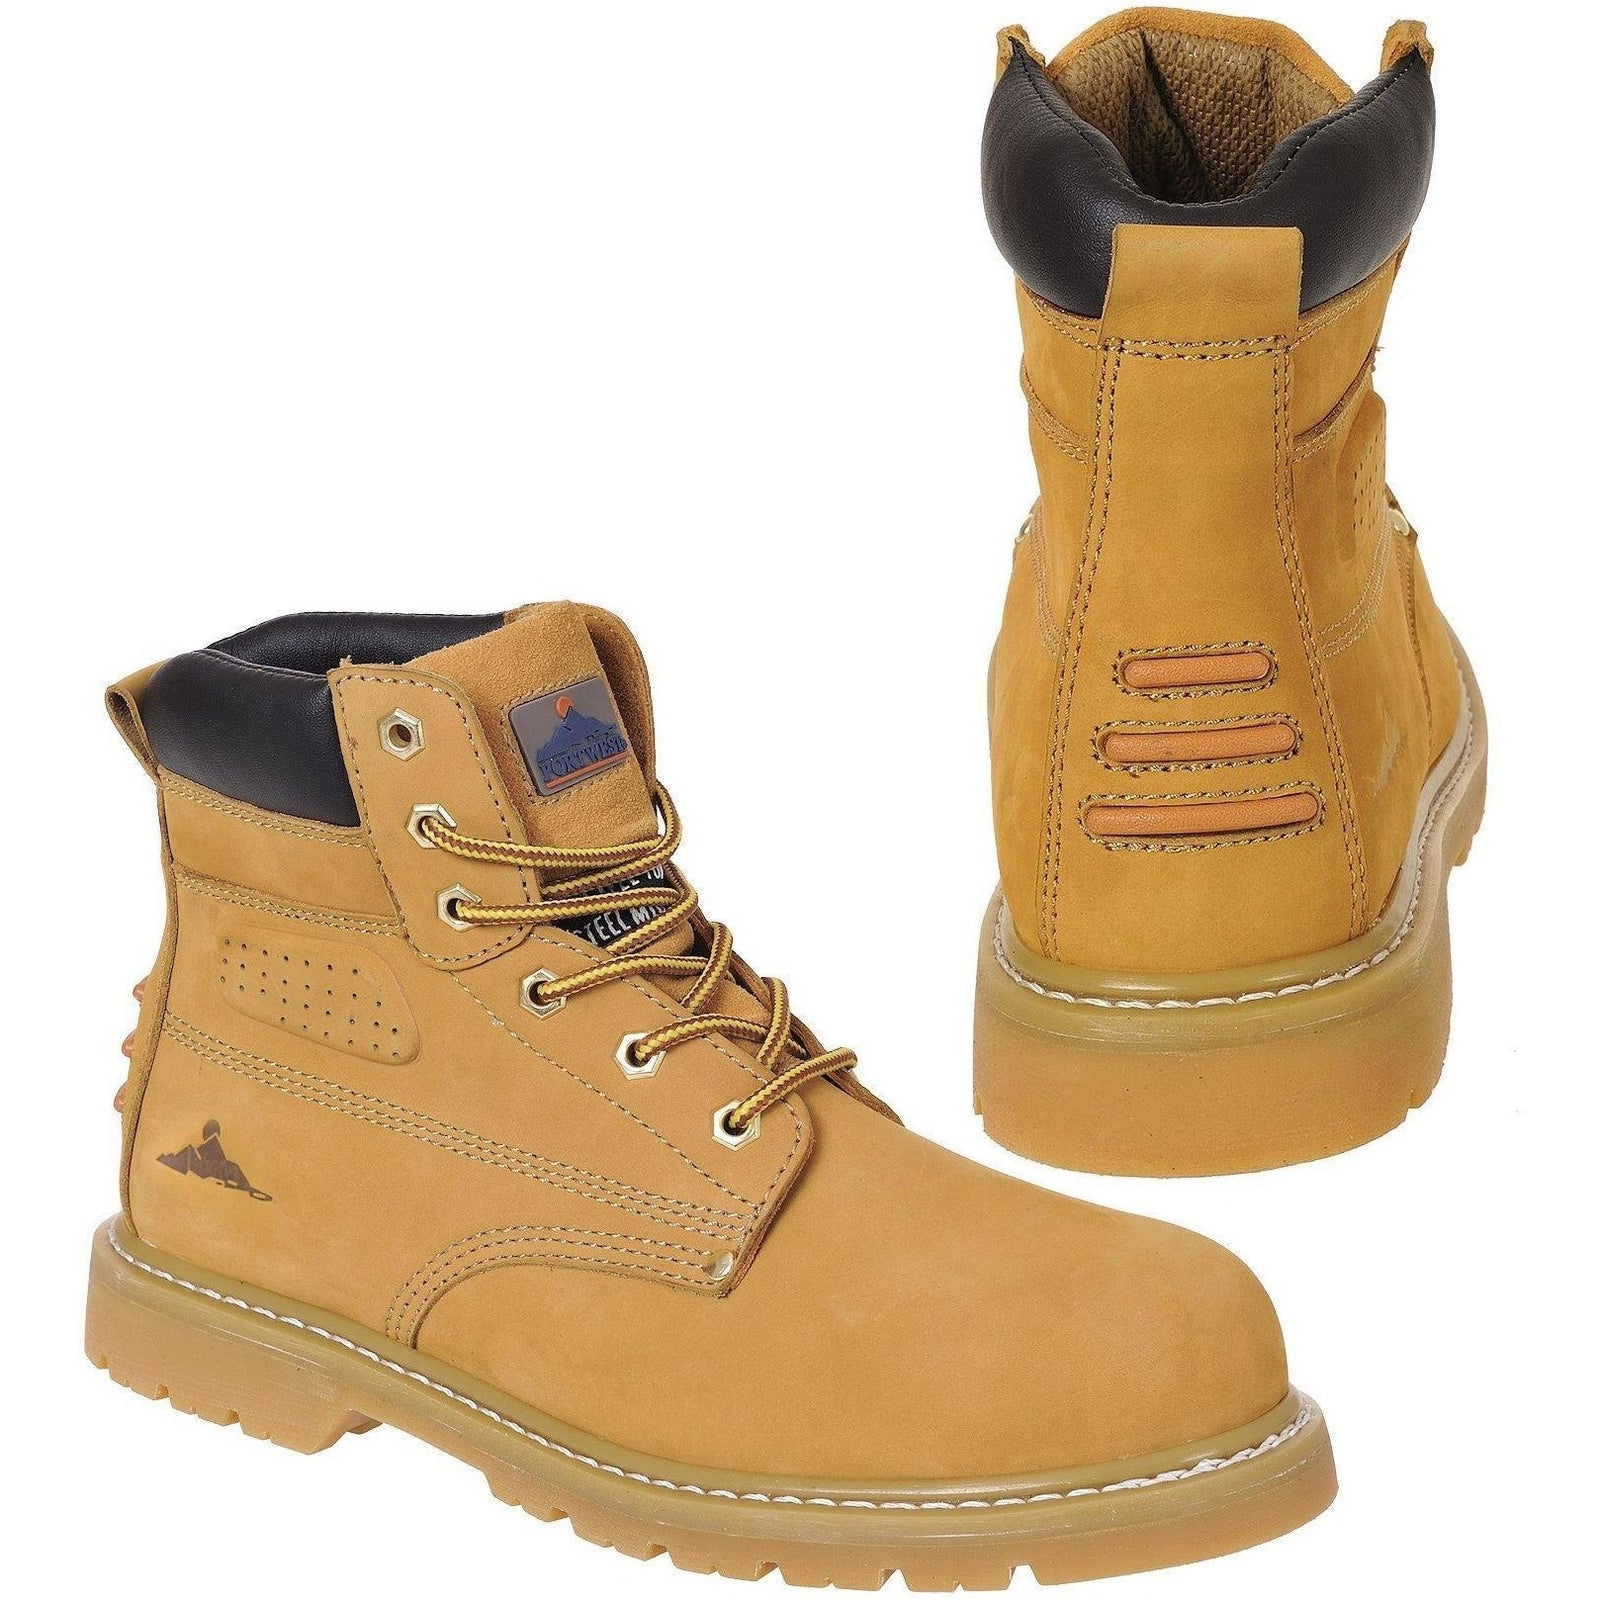 Portwest Steelite Welted Plus Safety Boot SBP HRO FW35 - reid outdoors